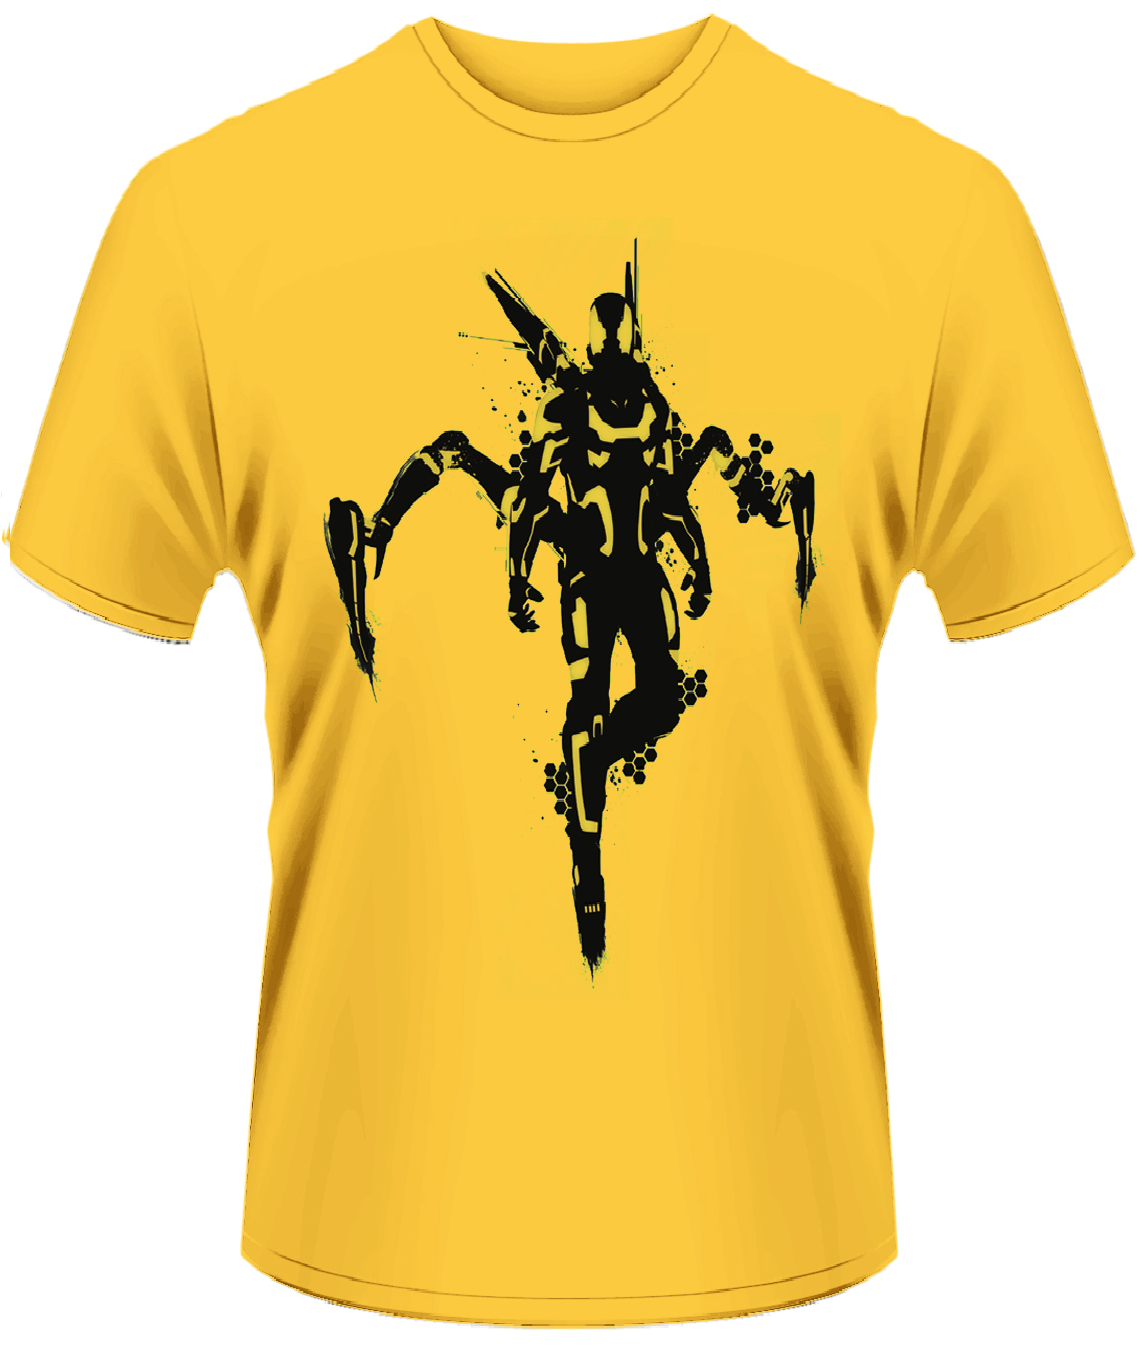 Unisex Marvel Ant Man Yellow Jacket T-Shirt